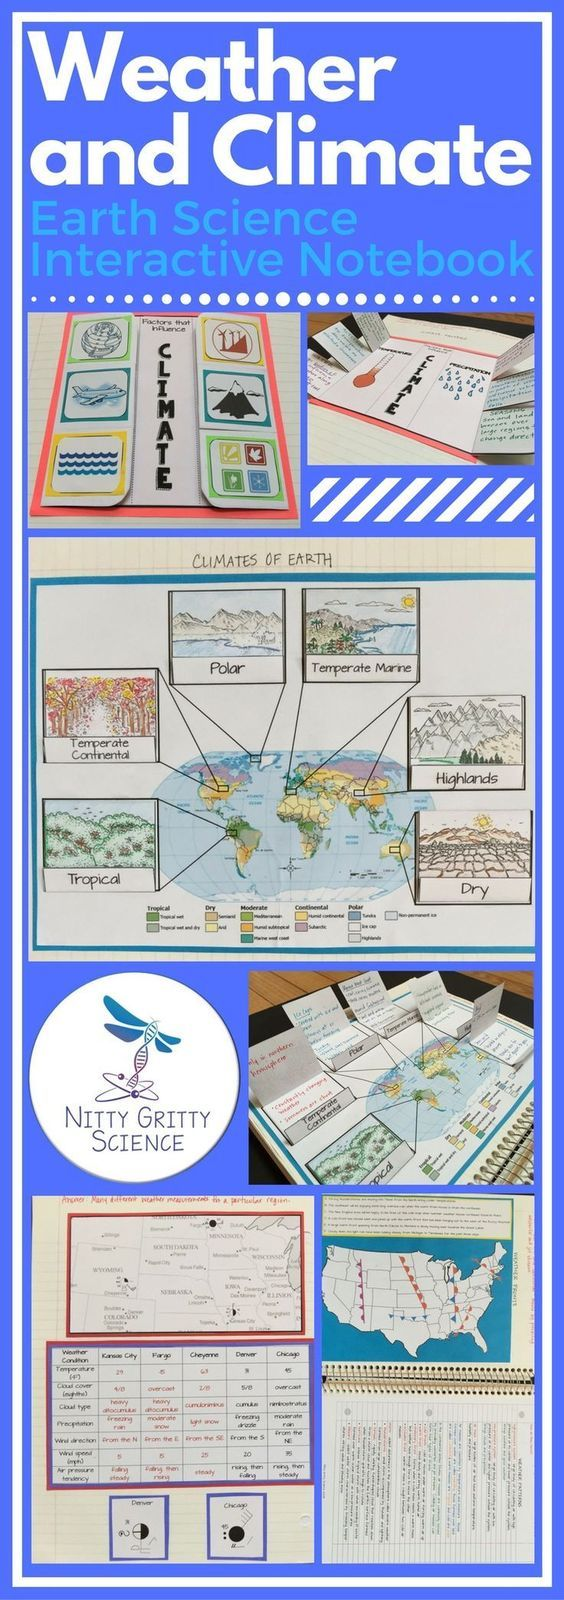 "The Earth Science Interactive Notebook: Weather and Climate chapter will never leave students feeling ""cloudy"" about their lessons. Each chapter in the series will showcase many activities for the students to process the information given by the teacher then allow them to use self-direction to apply their new knowledge. The engaging activities always vary to enable all students to use and benefit from different learning styles."